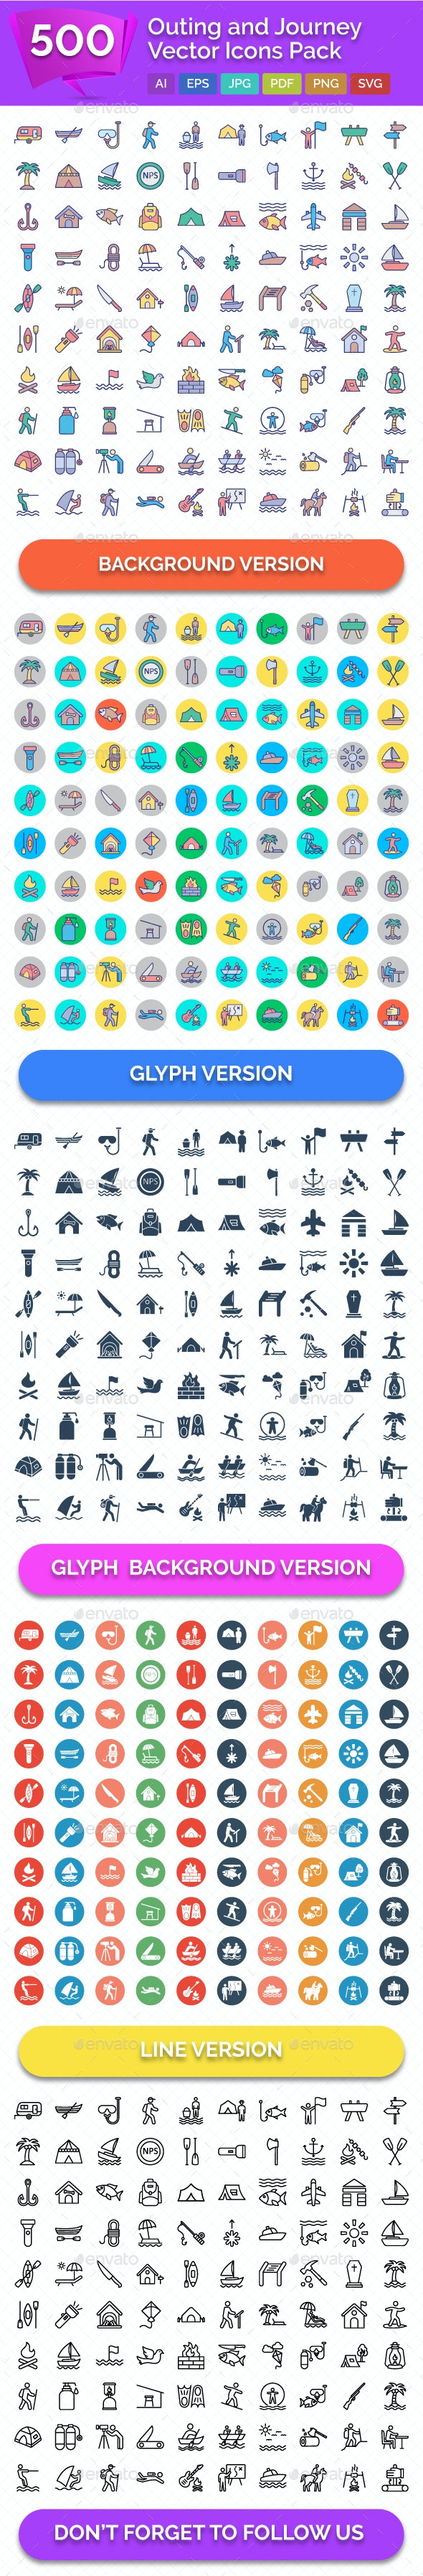 500 Outing and Journey Vector Icons - Icons